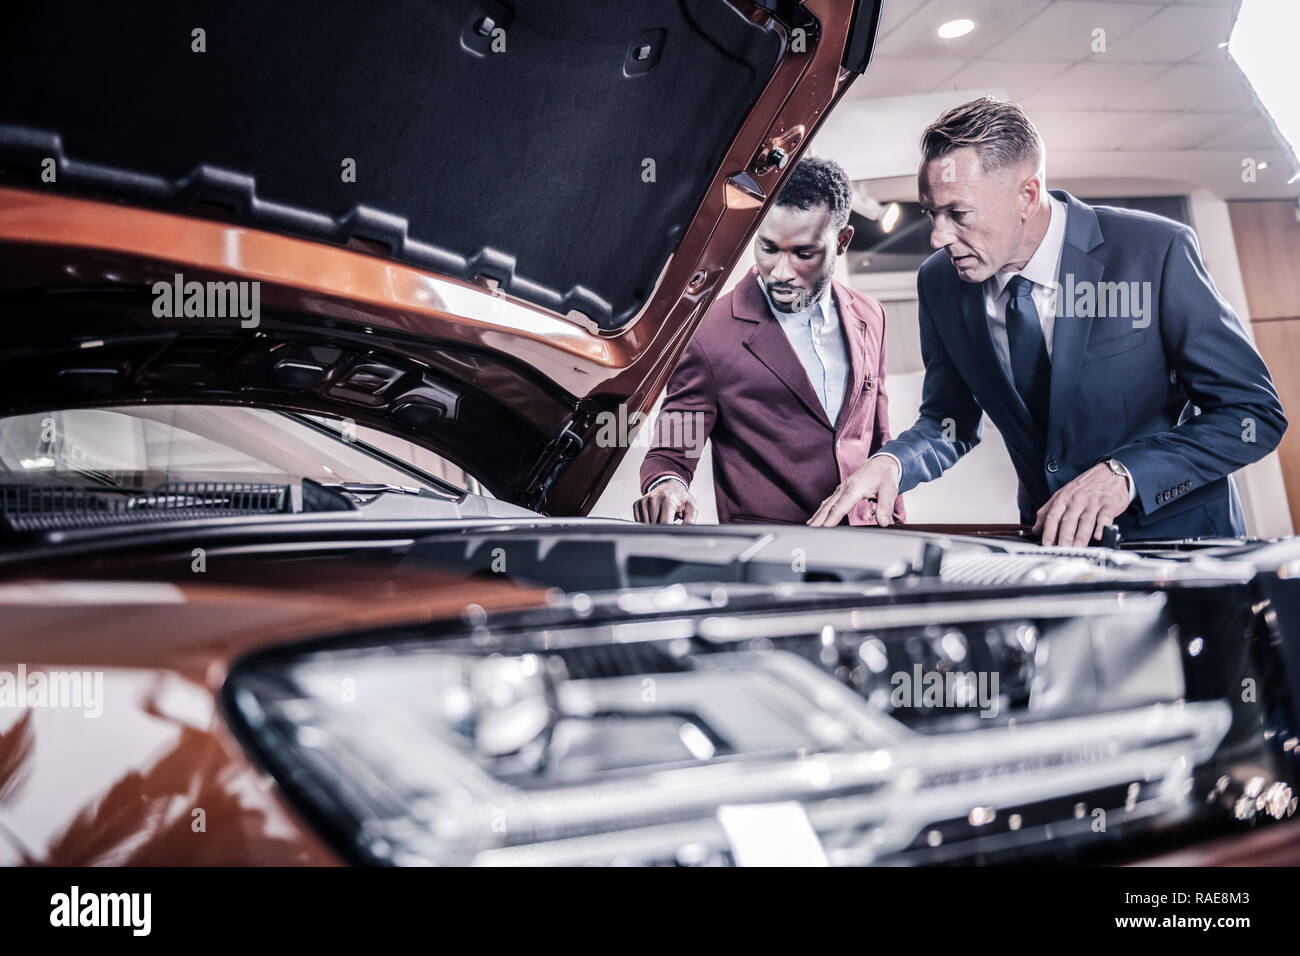 Two men standing near brown hatchback car with opened front trunk - Stock Image